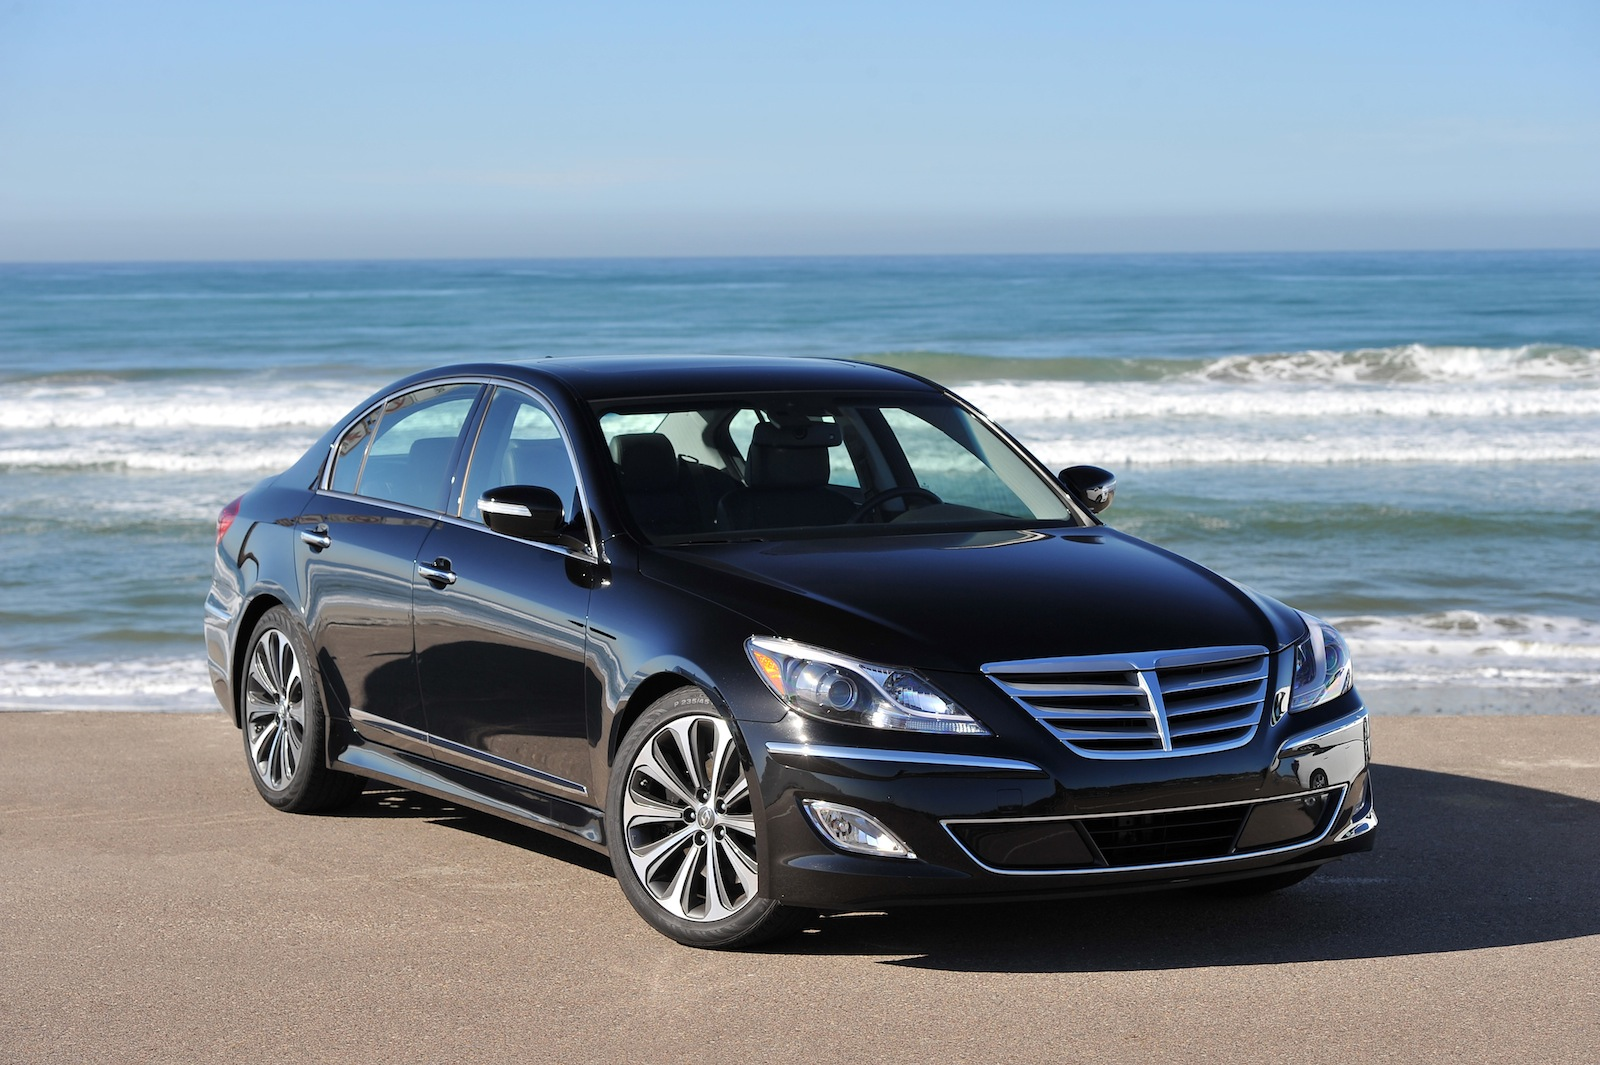 Hyundai Genesis V8 R-Spec Review - Photos